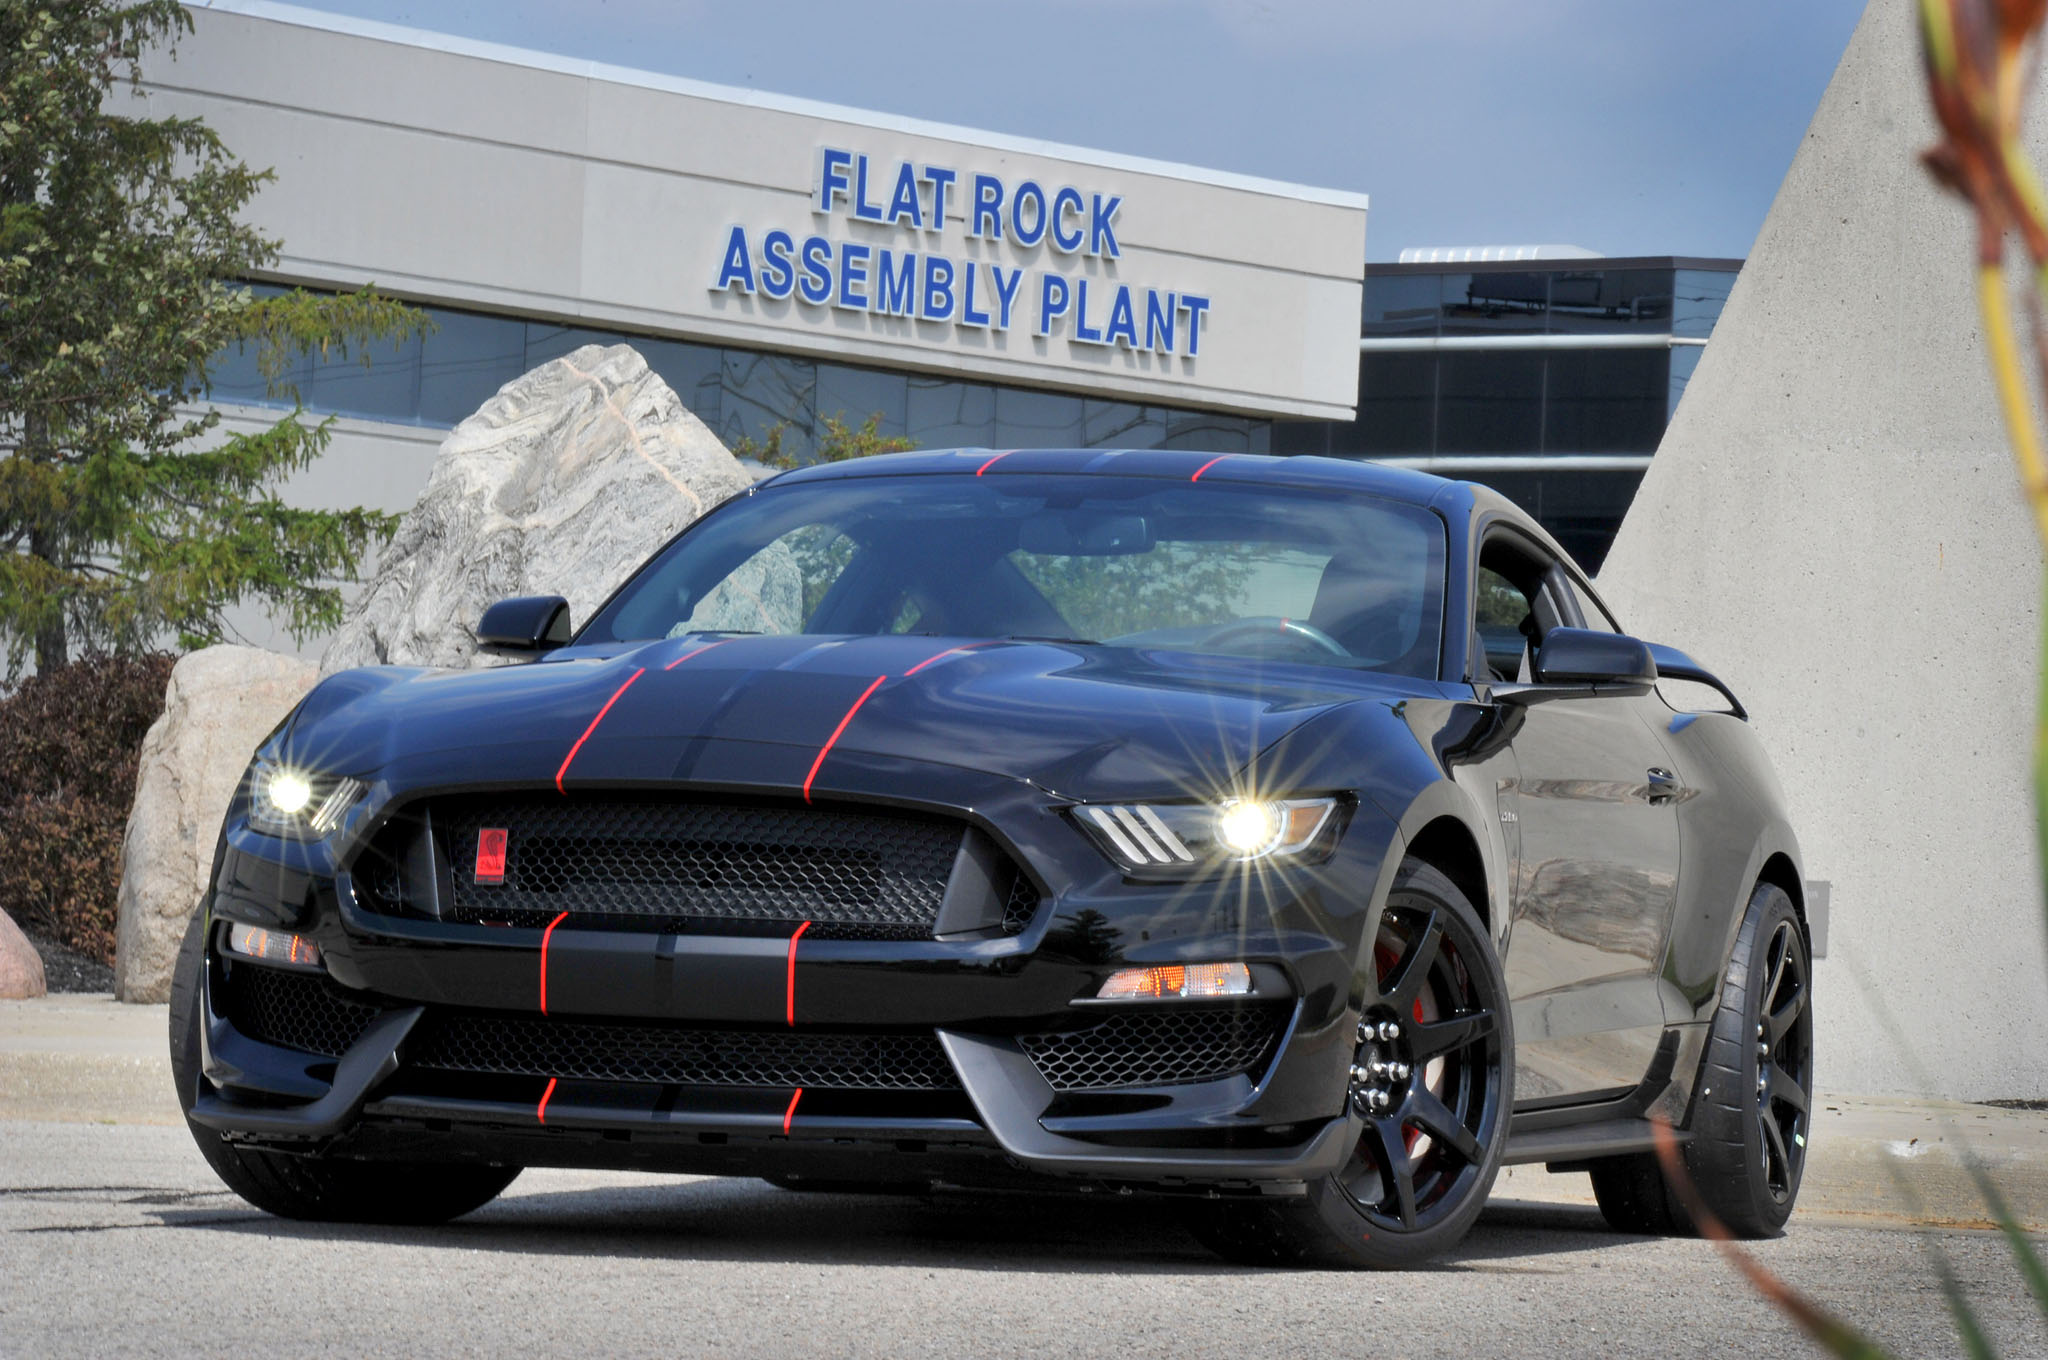 ford shelby gt mustang begins production  flat rock